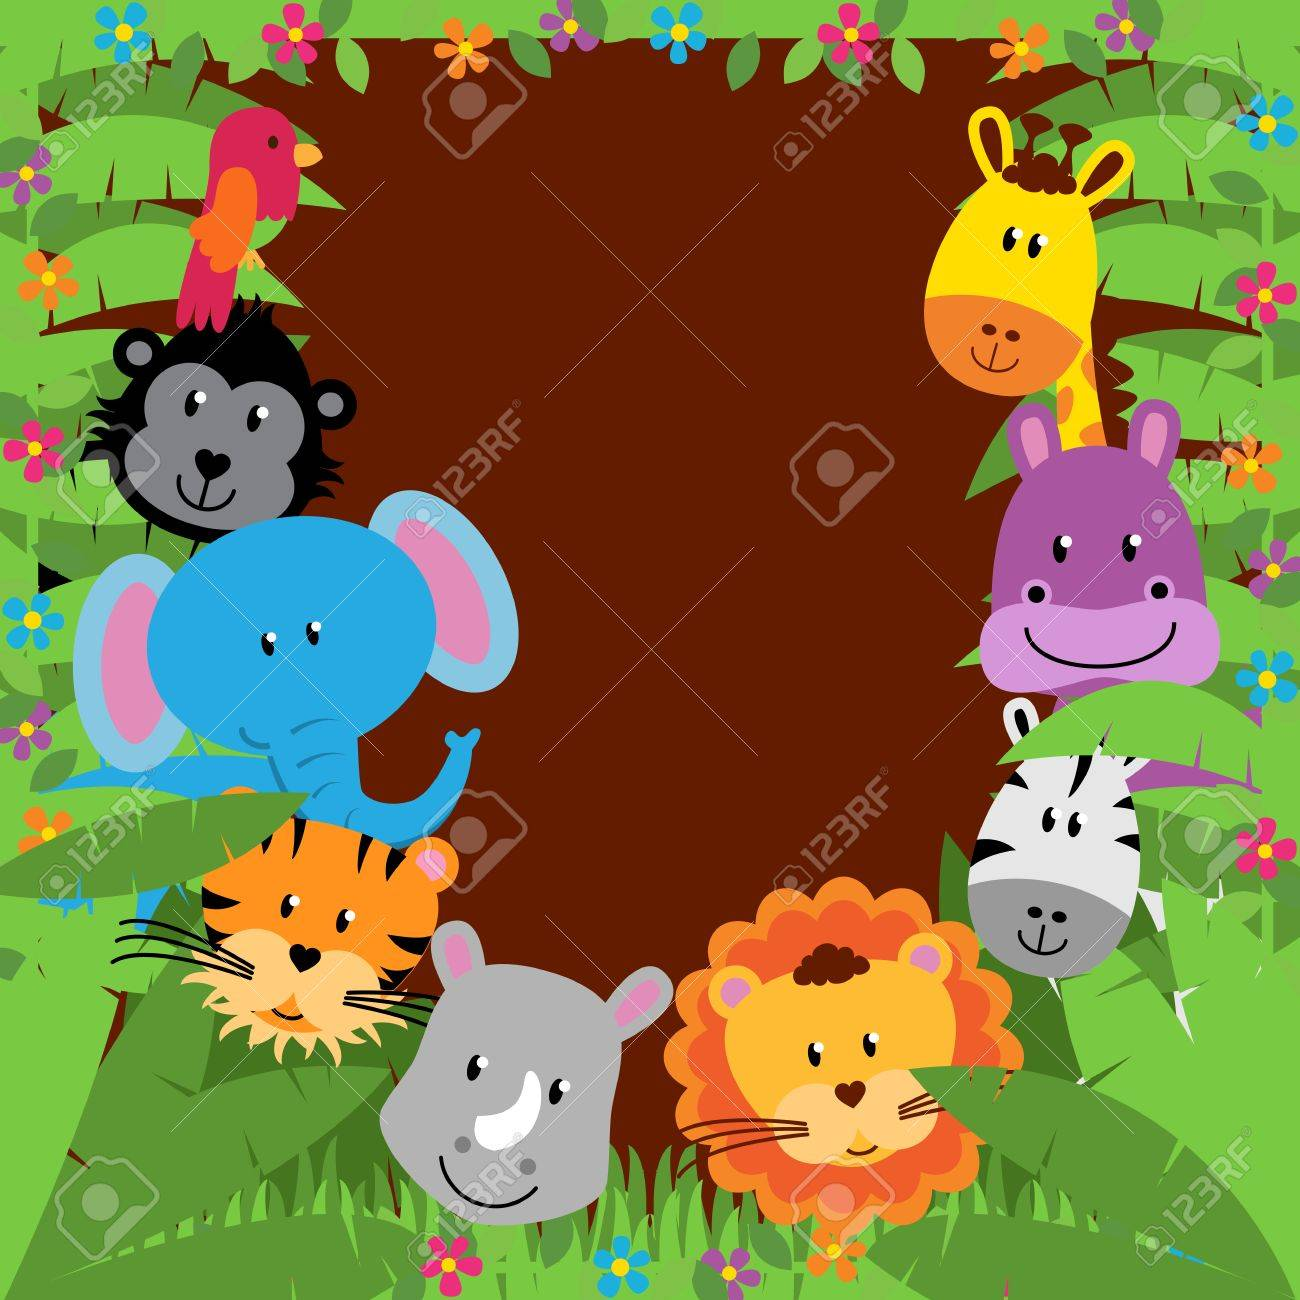 Jungle or Zoo Themed Animal Background - 40619383